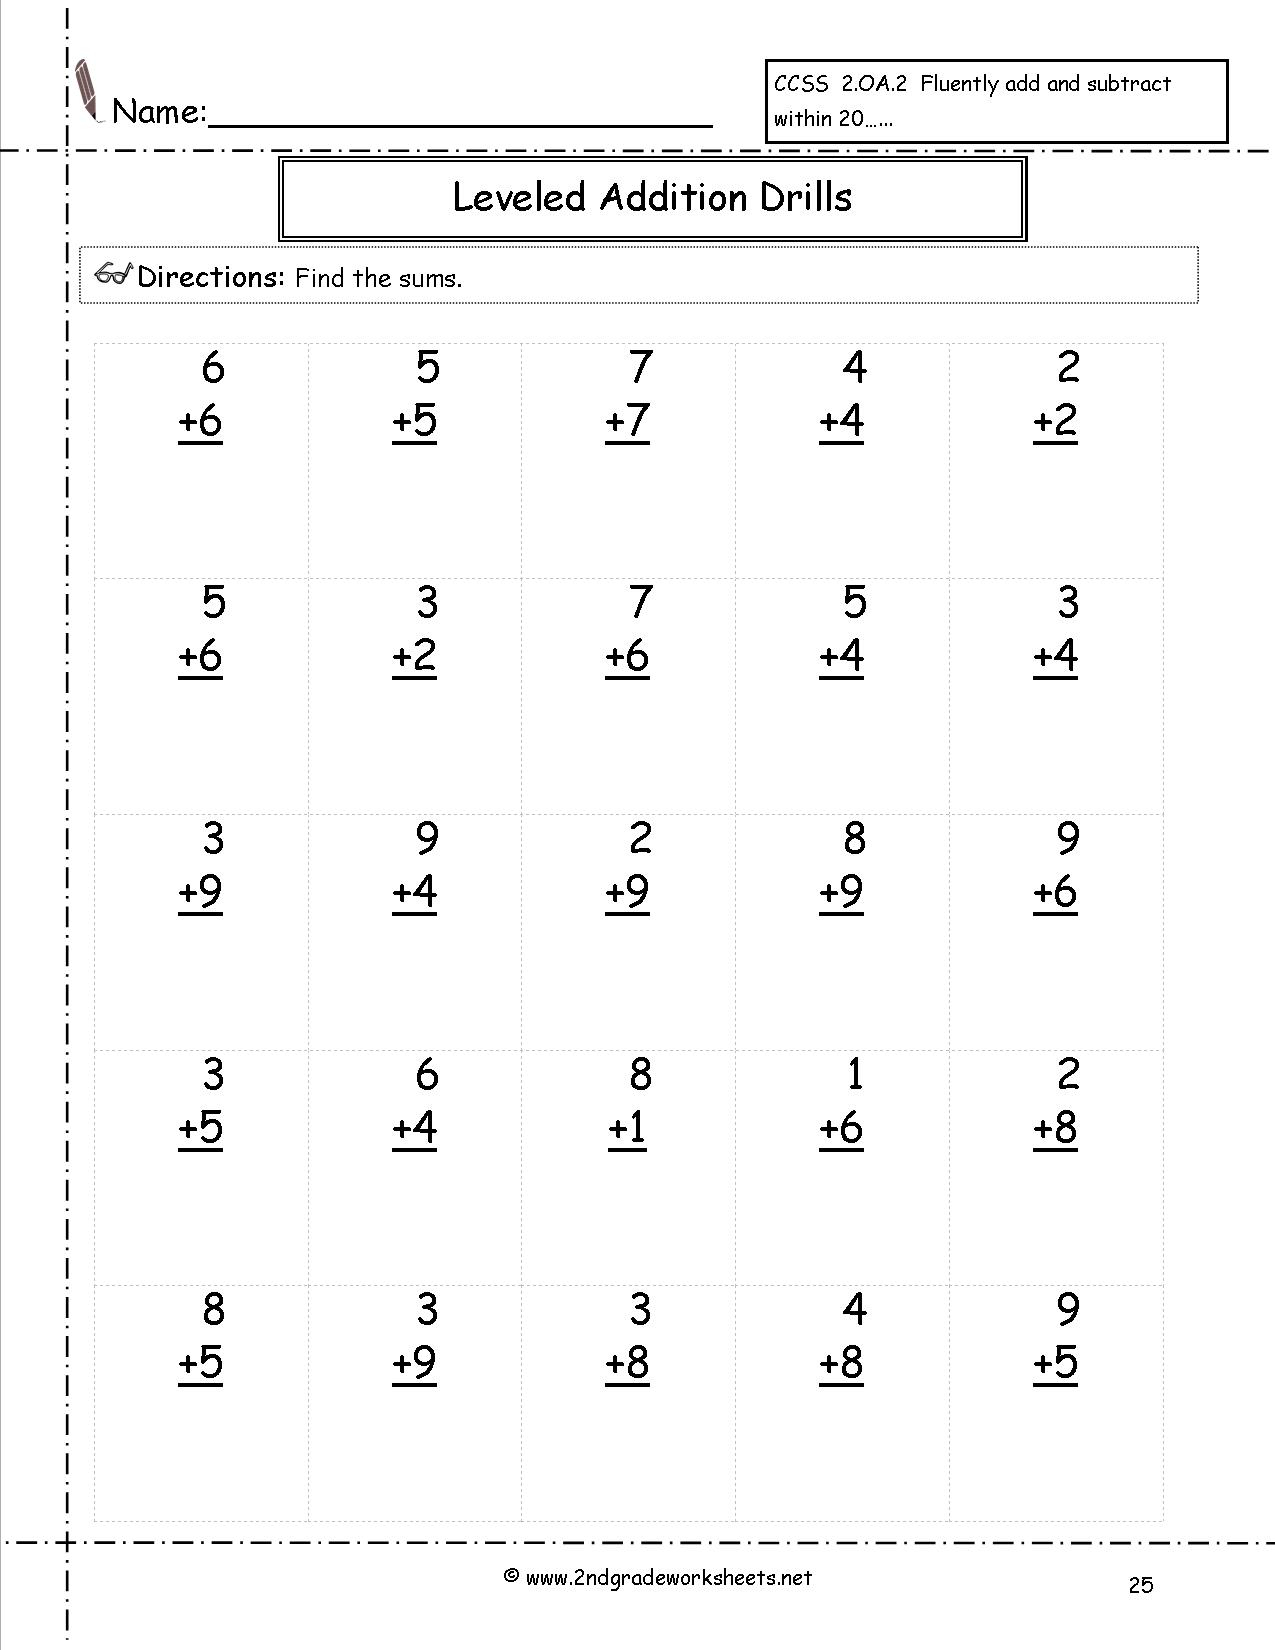 Free Math Worksheets And Printouts | Free Printable Worksheets For 2Nd Grade